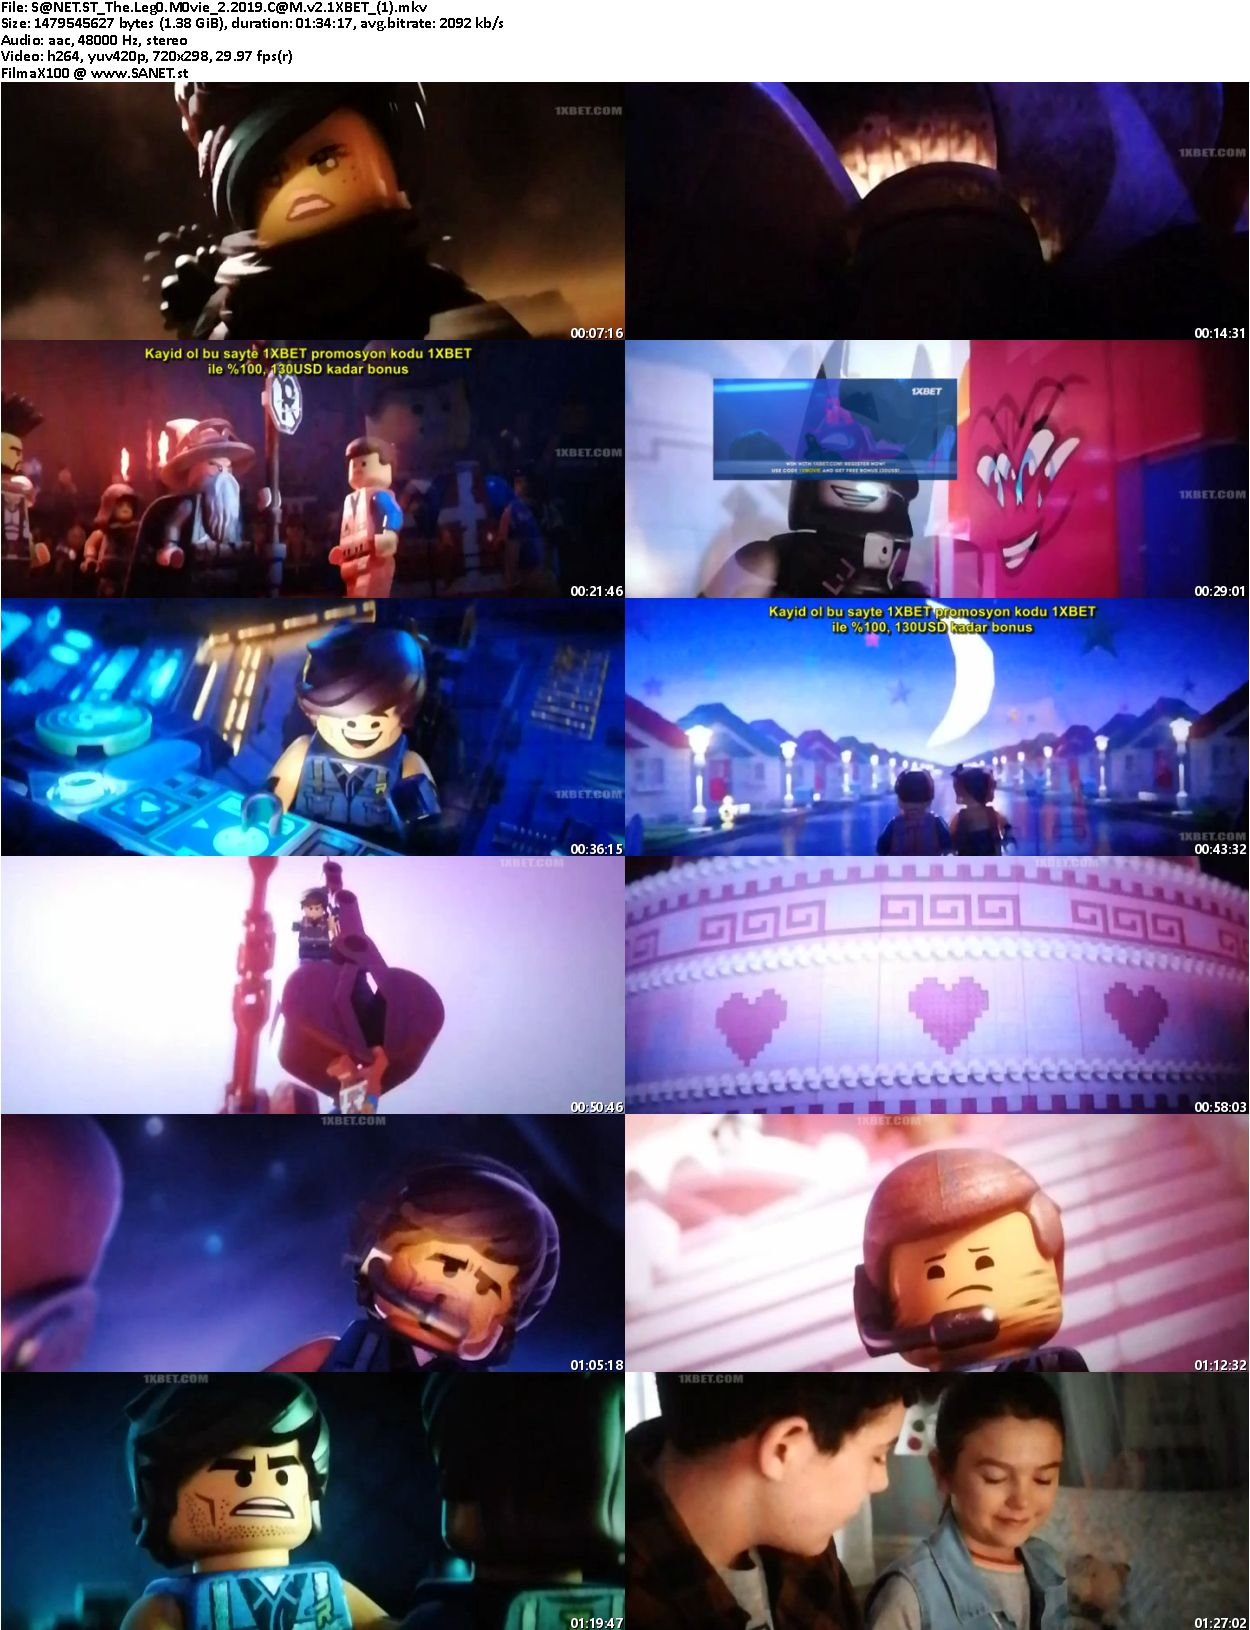 Download The Lego Movie 2 2019 HDCAM v2-1XBET - SoftArchive